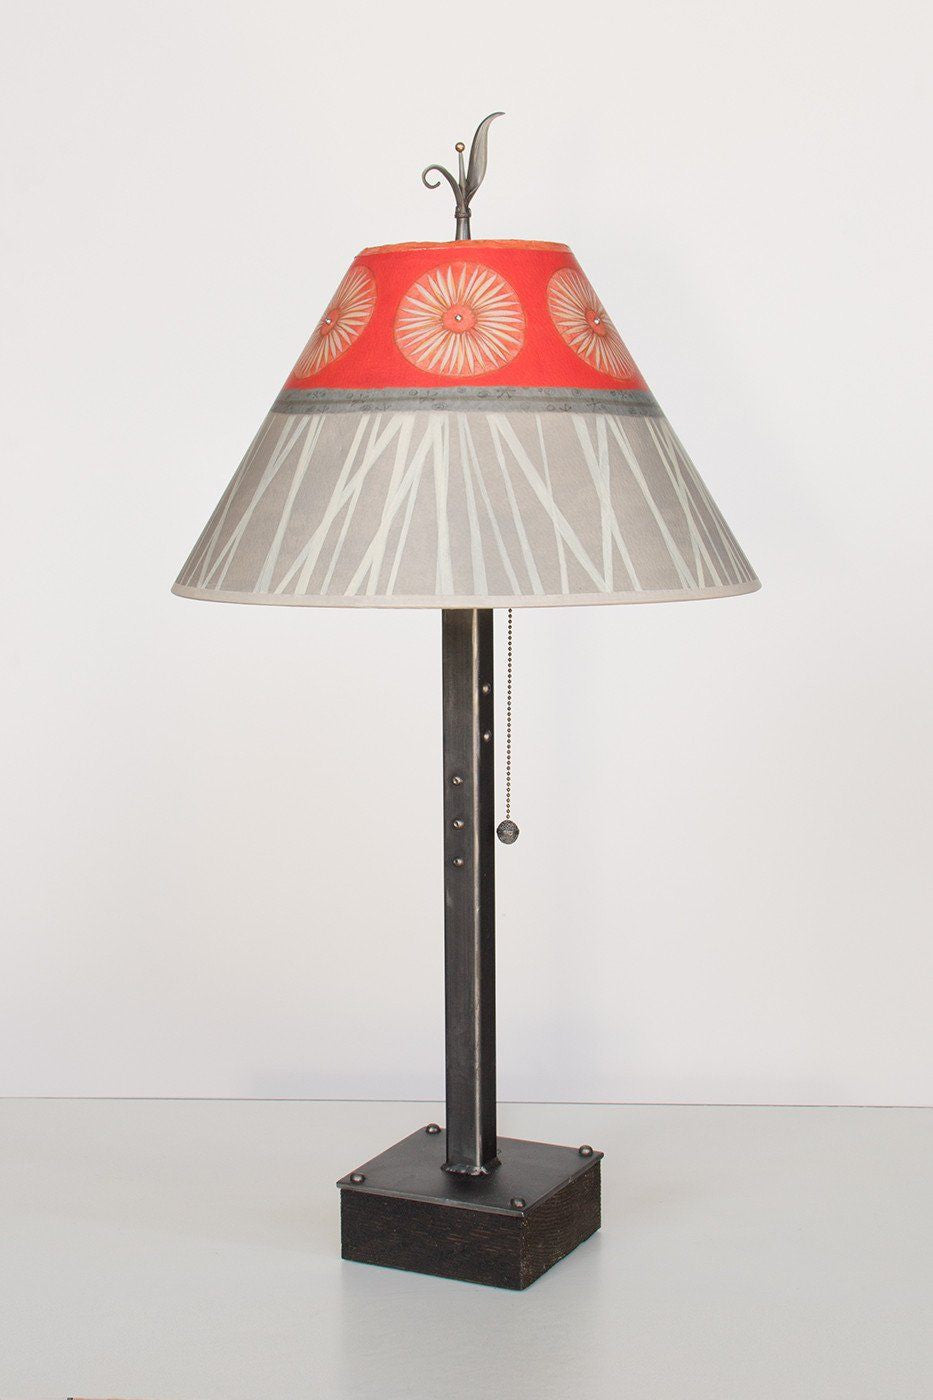 Steel Table Lamp on Wood with Medium Conical Shade in Tang - Lit